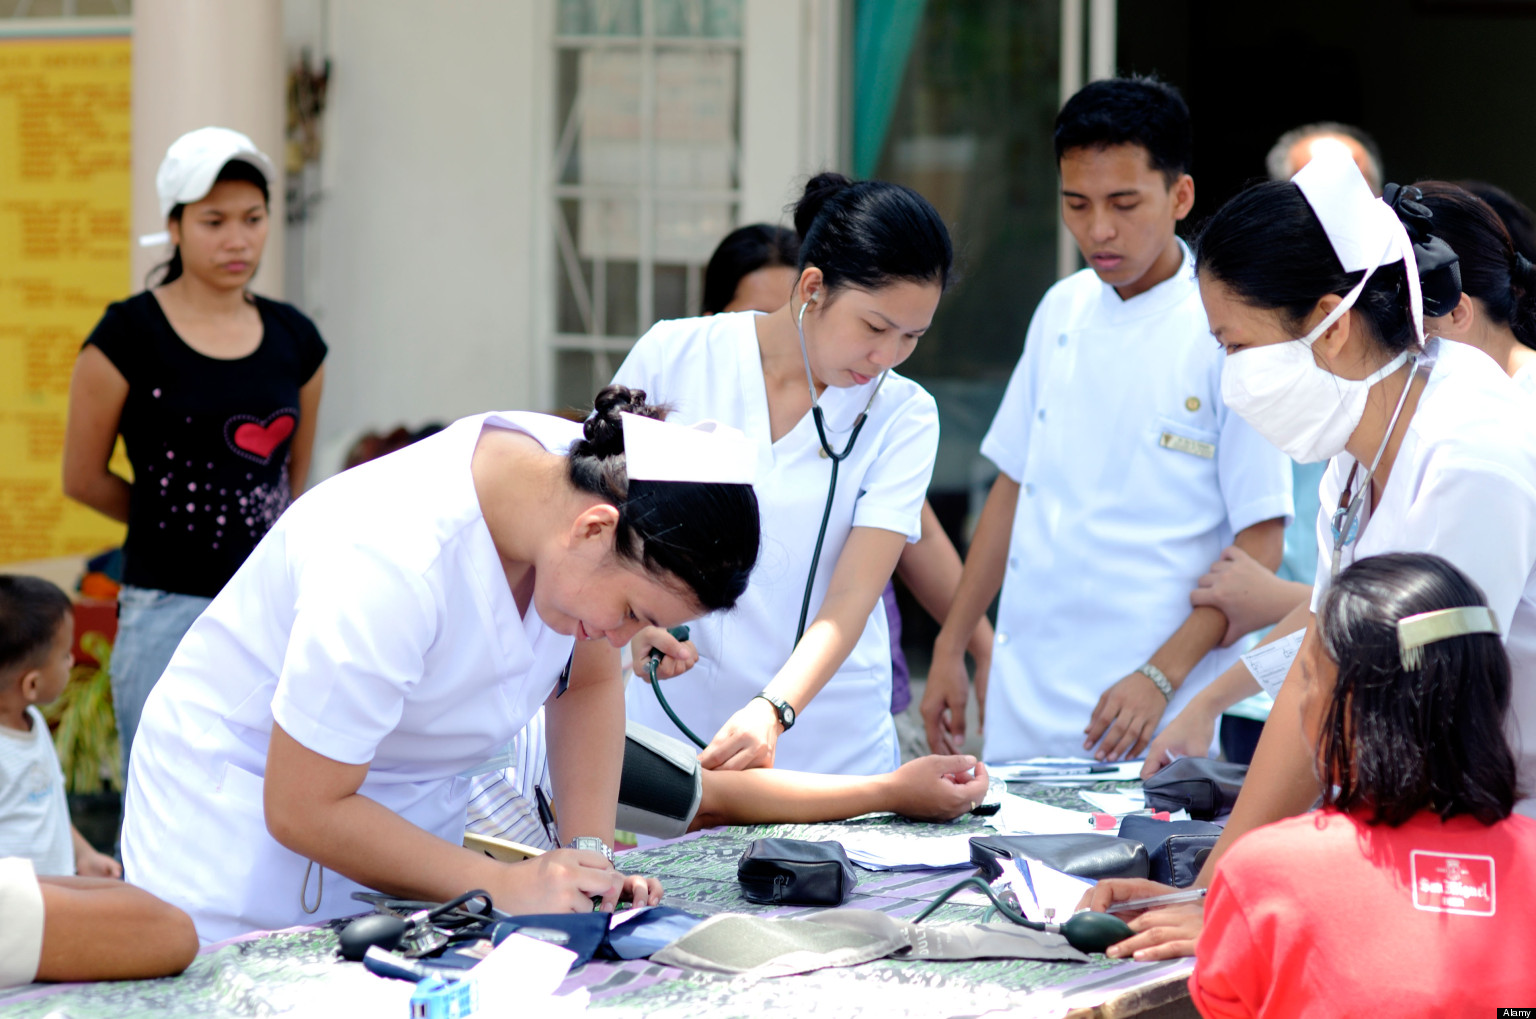 filipino nurses Qualified filipino nurses wanting to come to australia and practice their skills have come to the right site to get the information needed.